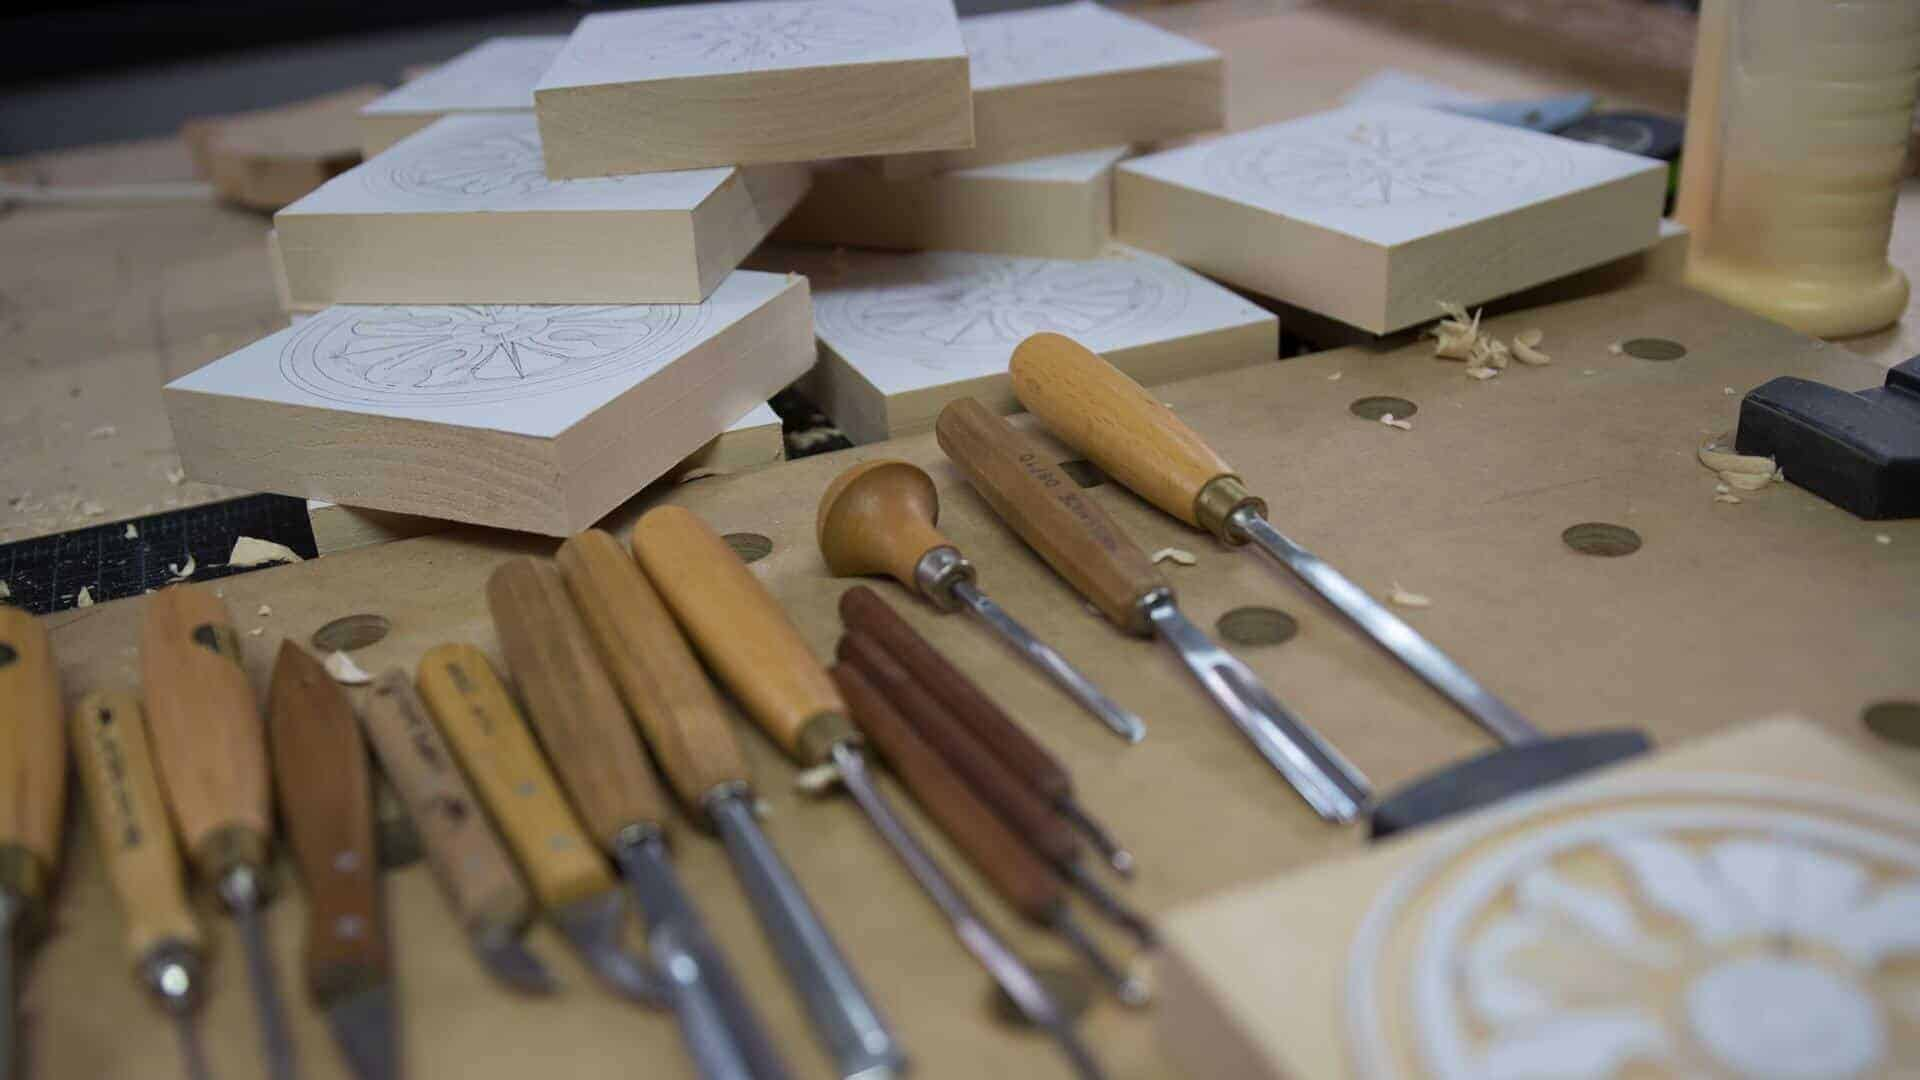 Woodcarving School | Learn to Carve Antique Style Rosette with Alexander Grabovetskiy Woodcarver | School of Woodcarving https://schoolofwoodcarving.com